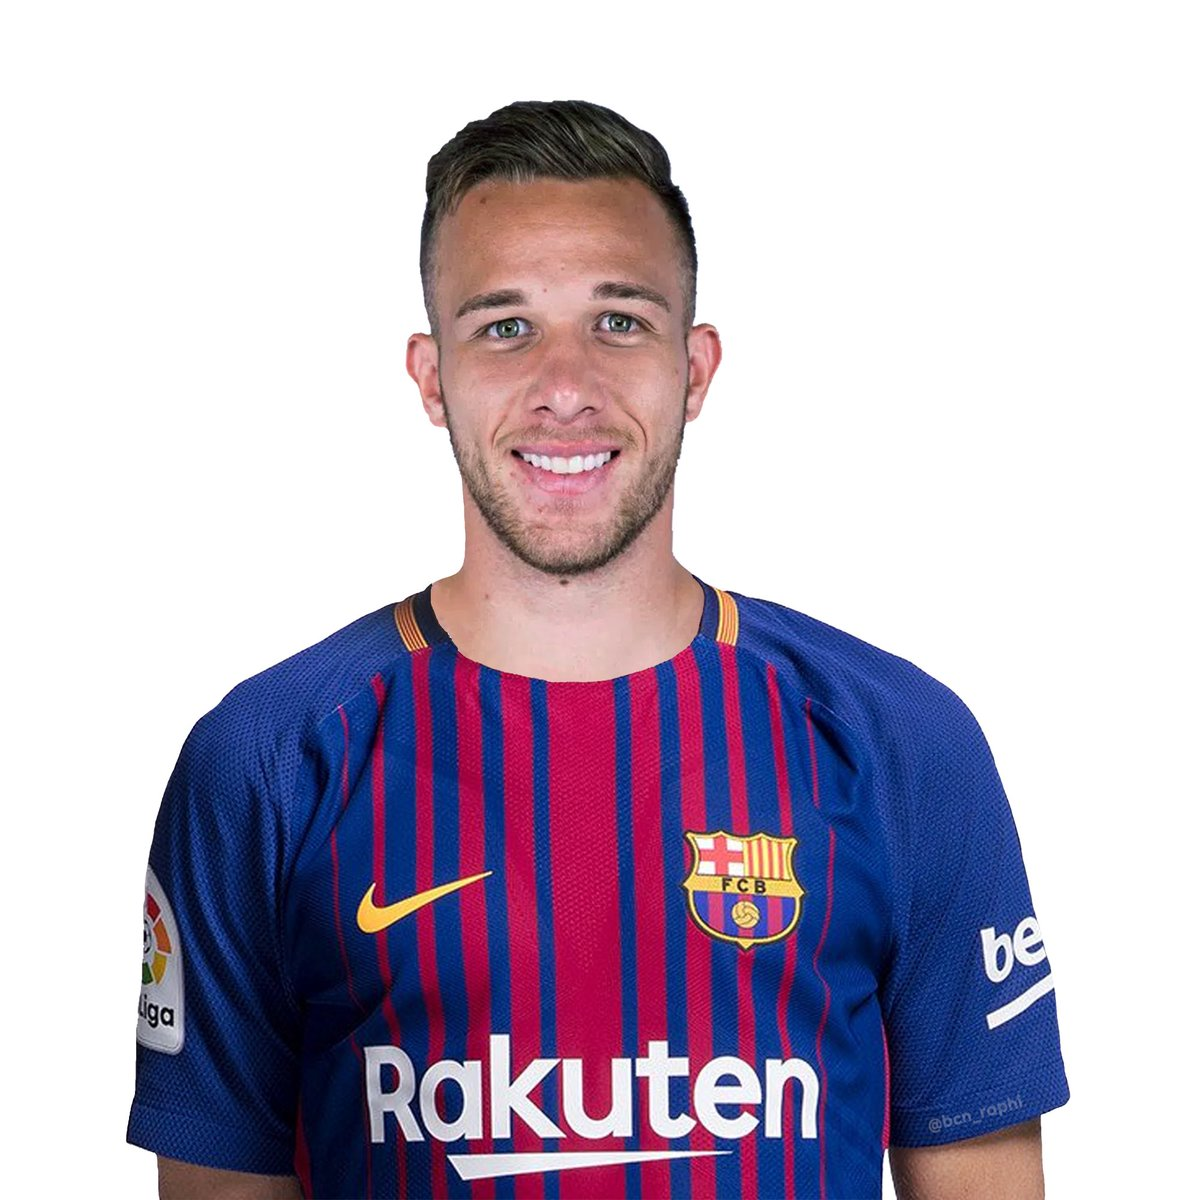 Raphi On Twitter Arthur To Fc Barcelona Edit Arthur Was Voted The Best Player In The Libertadores Final As He Ran The Show For Gremio He Was Spotted Wearing A Barca